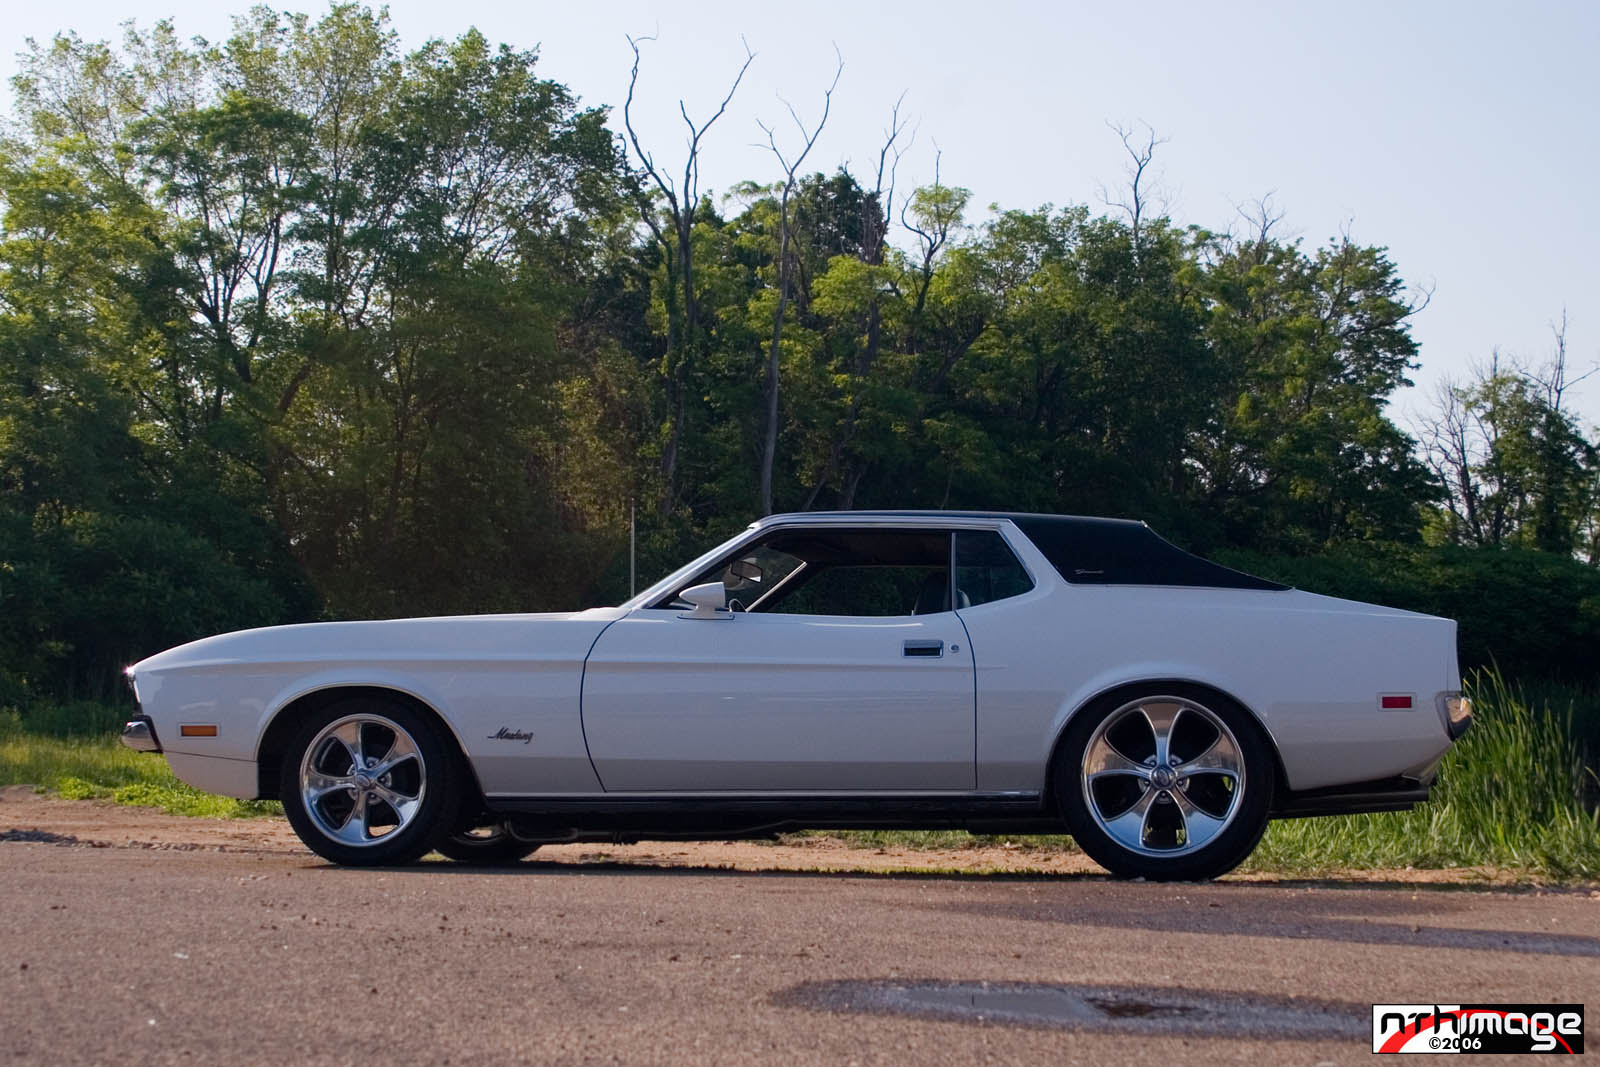 Nthimage - 1971 Ford Mustang